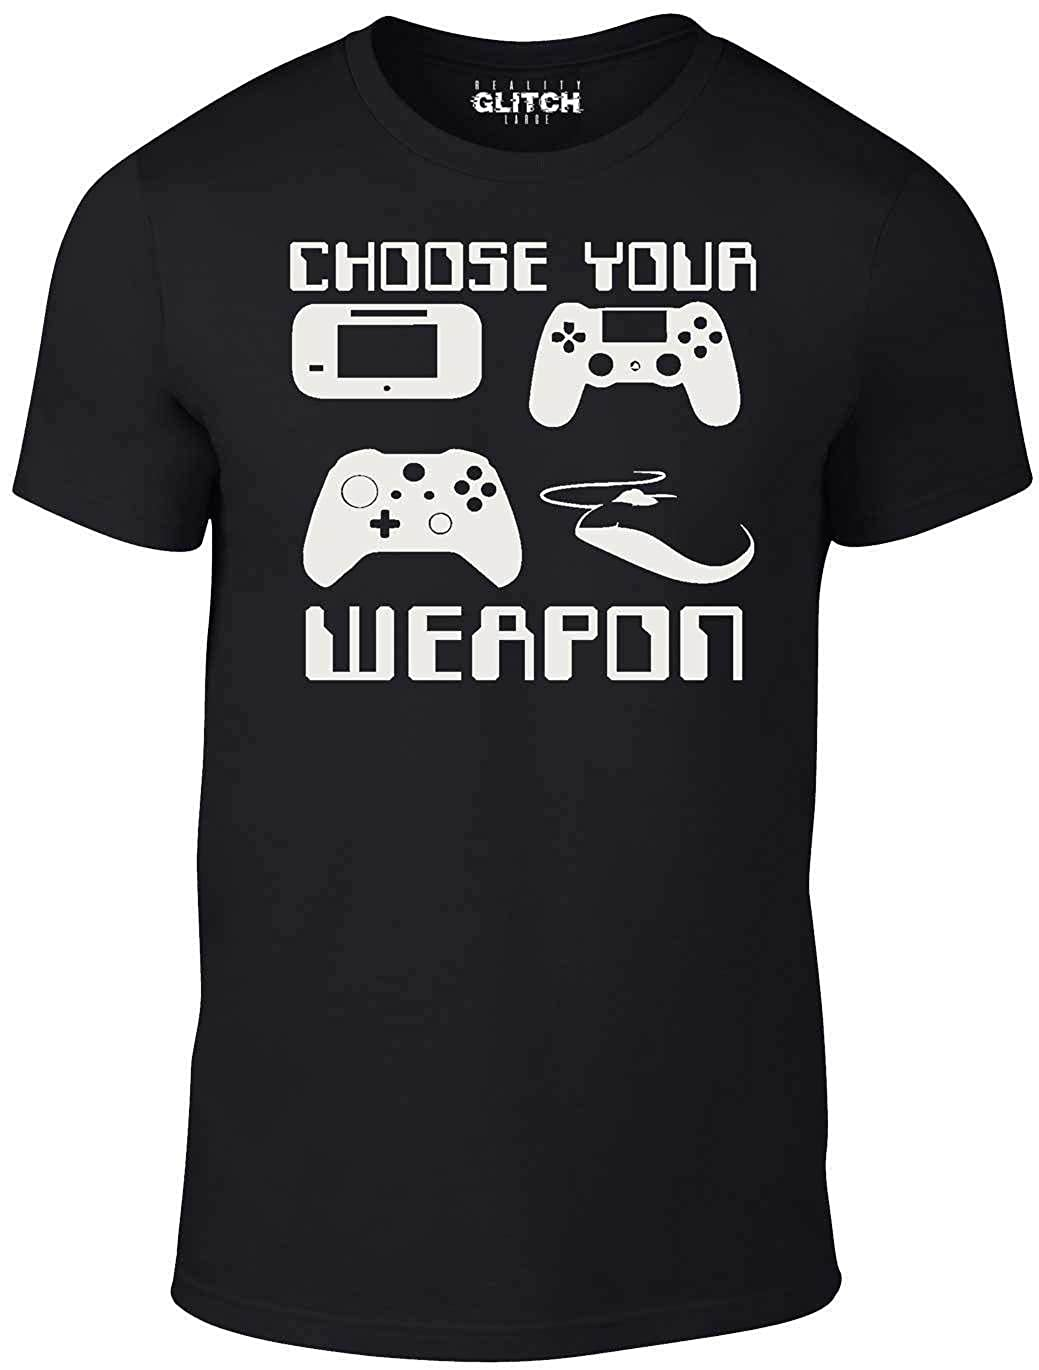 Reality Glitch Choose Your Weapon Gamer Tshirt (blackxx)